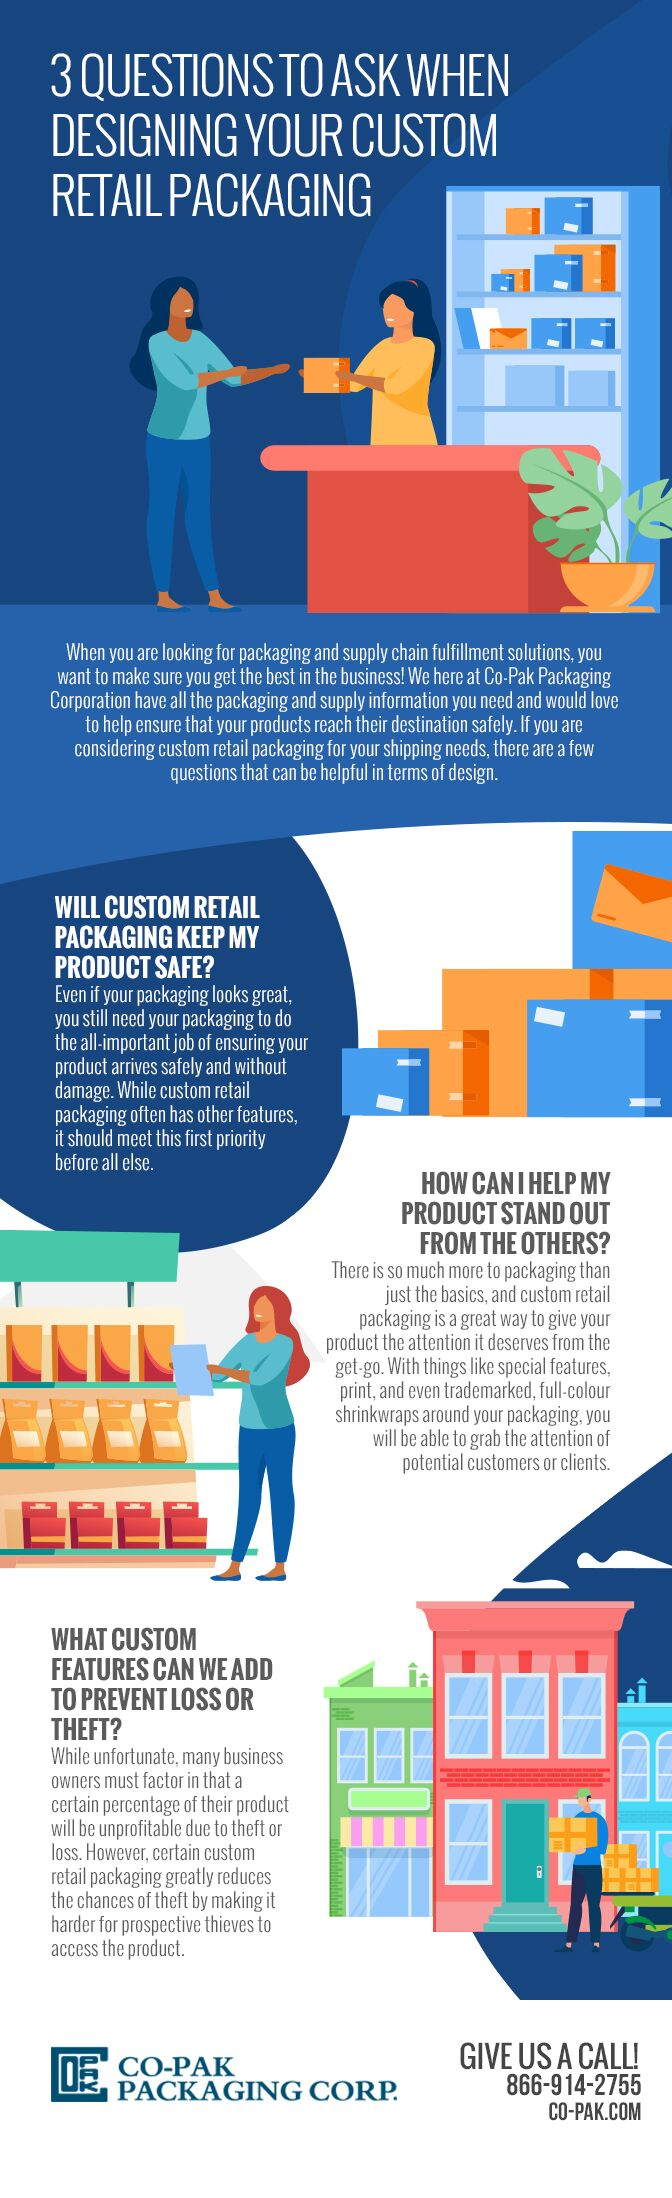 3 Questions to Ask When Designing Your Custom Retail Packaging